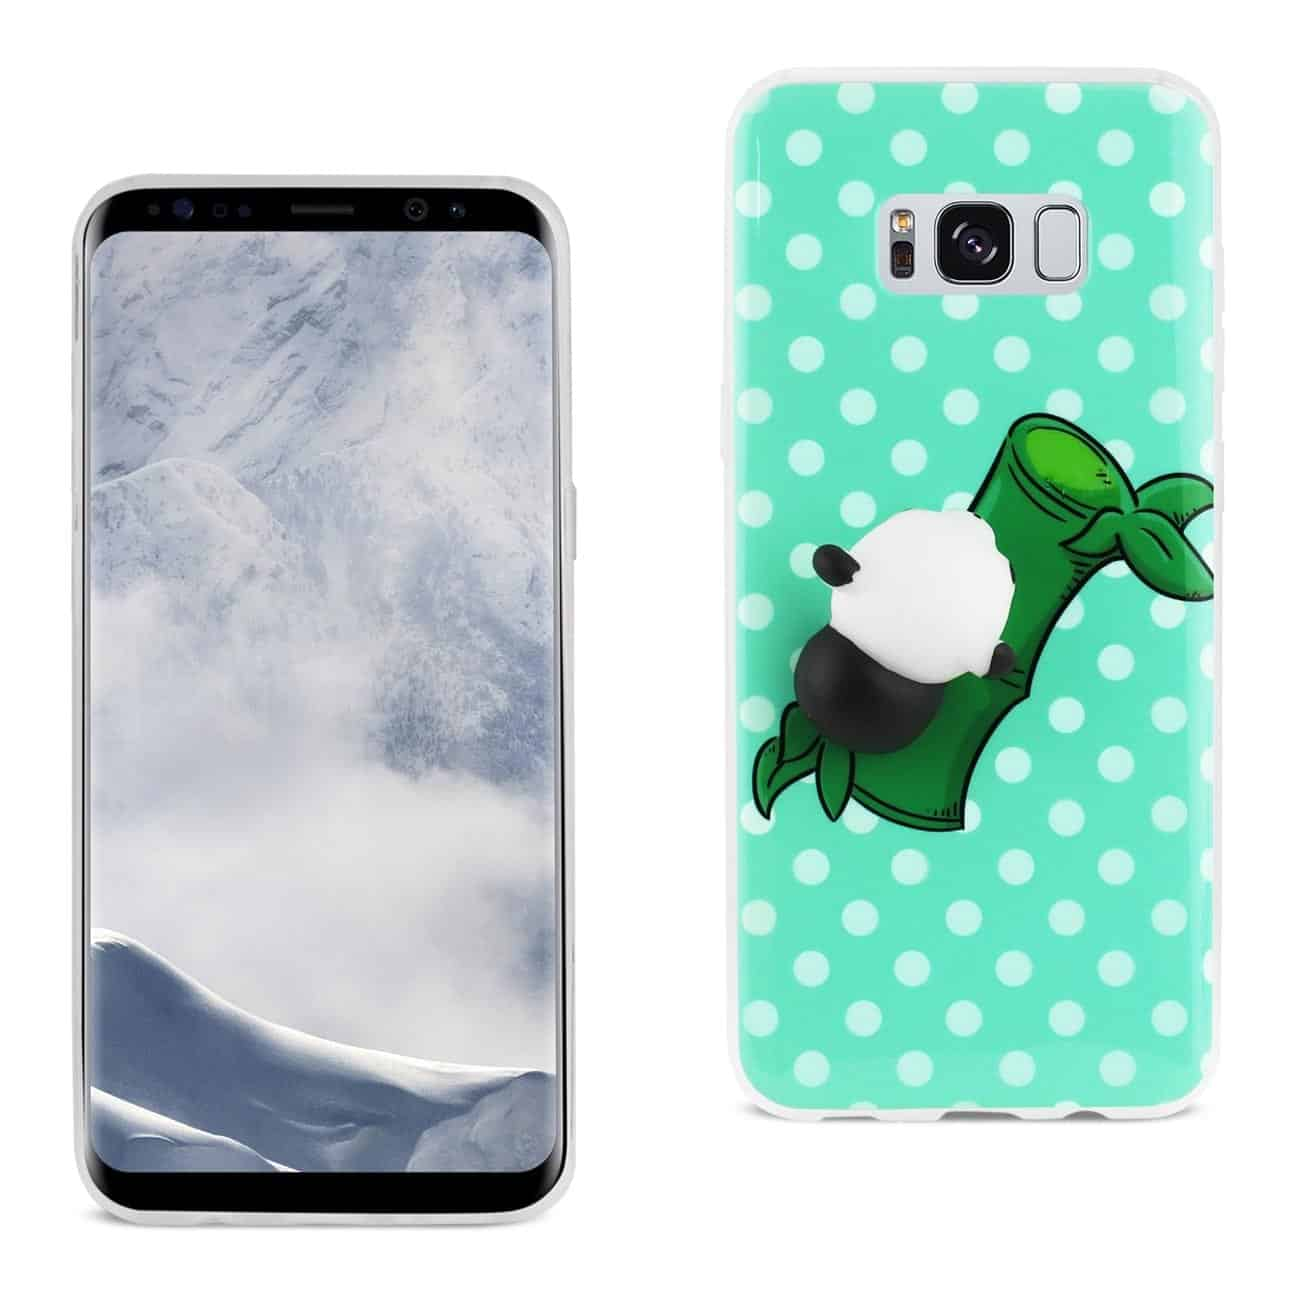 SAMSUNG GALAXY S8 EDGE TPU DESIGN CASE WITH  3D SOFT SILICONE POKE SQUISHY PANDA